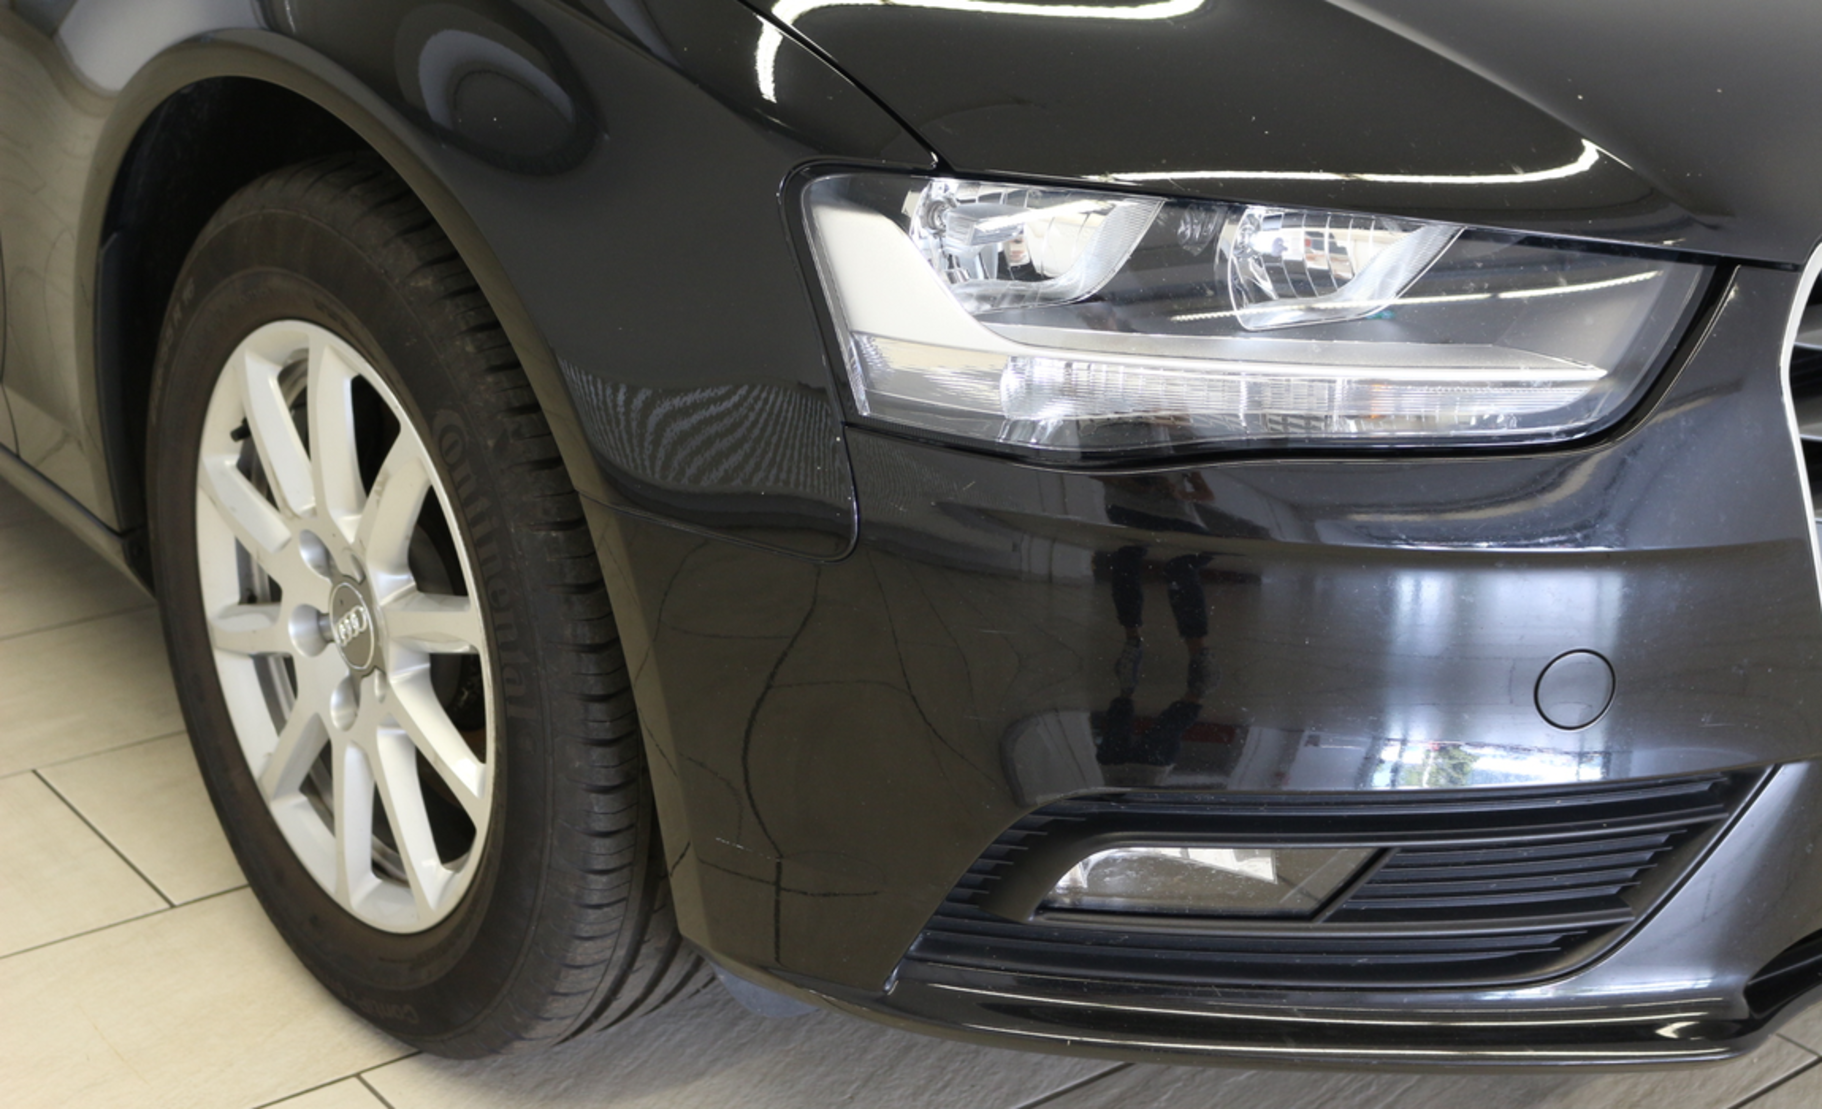 Audi A4 Avant 2.0 TDI DPF Attraction (523482) detail2